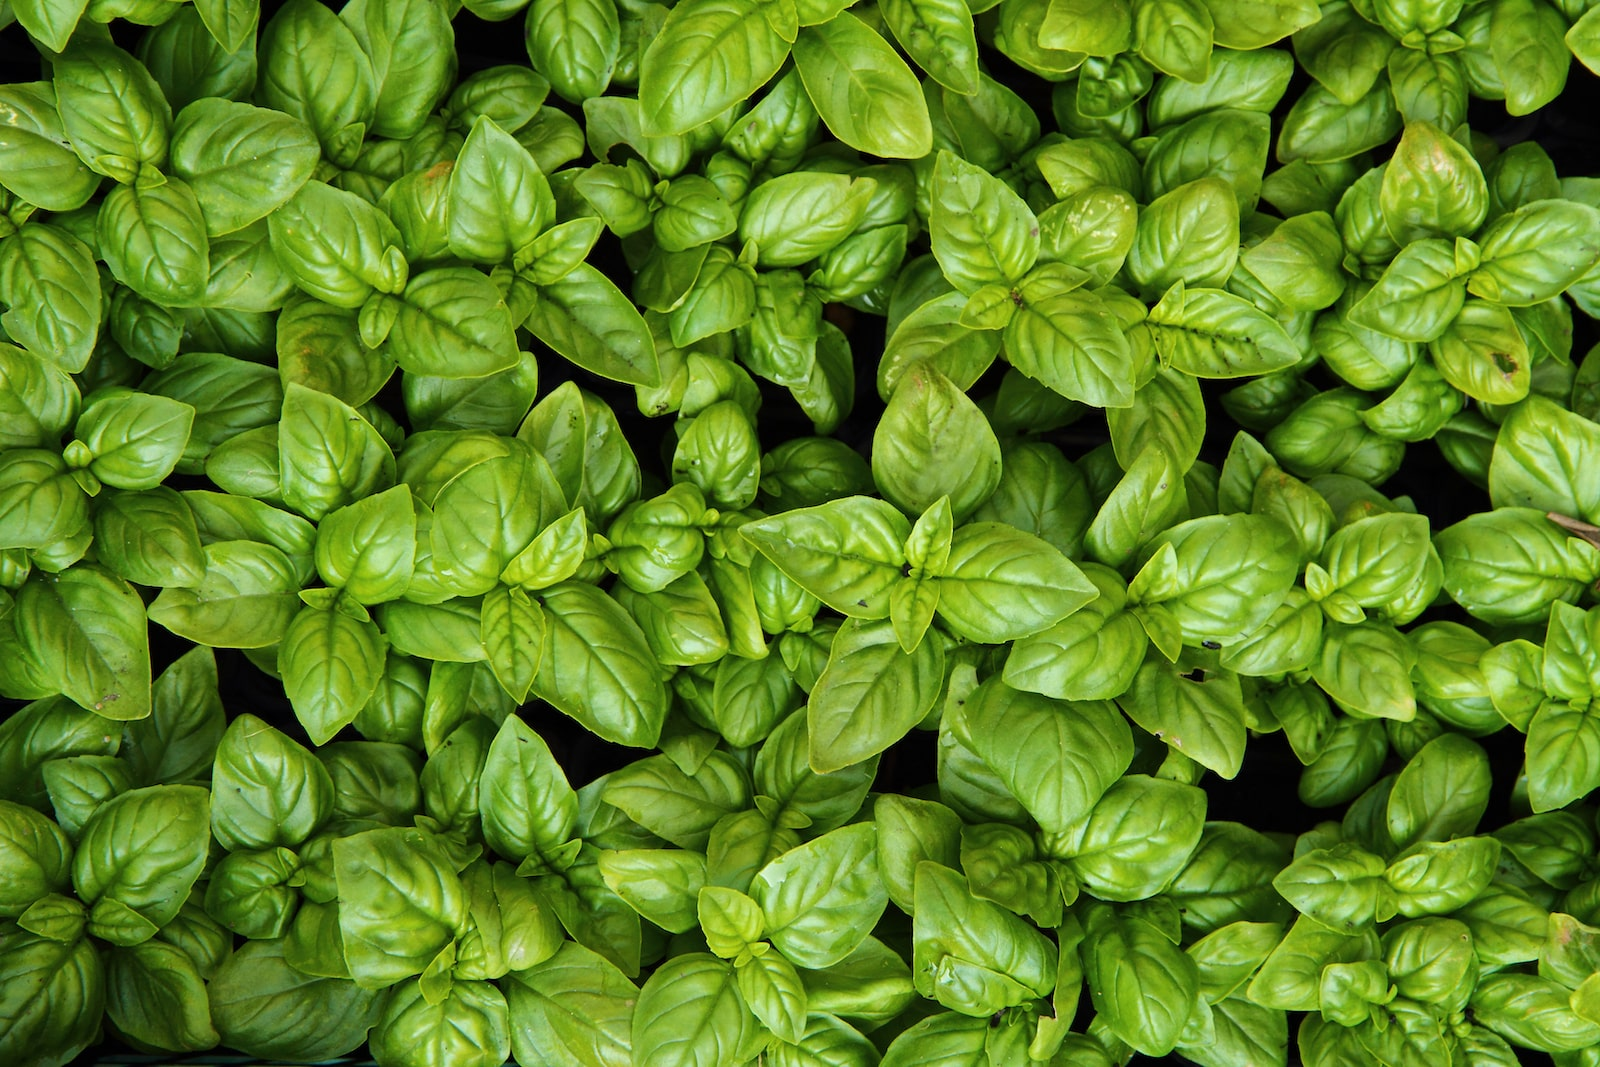 Five Classic (And Tasty) Basil Uses